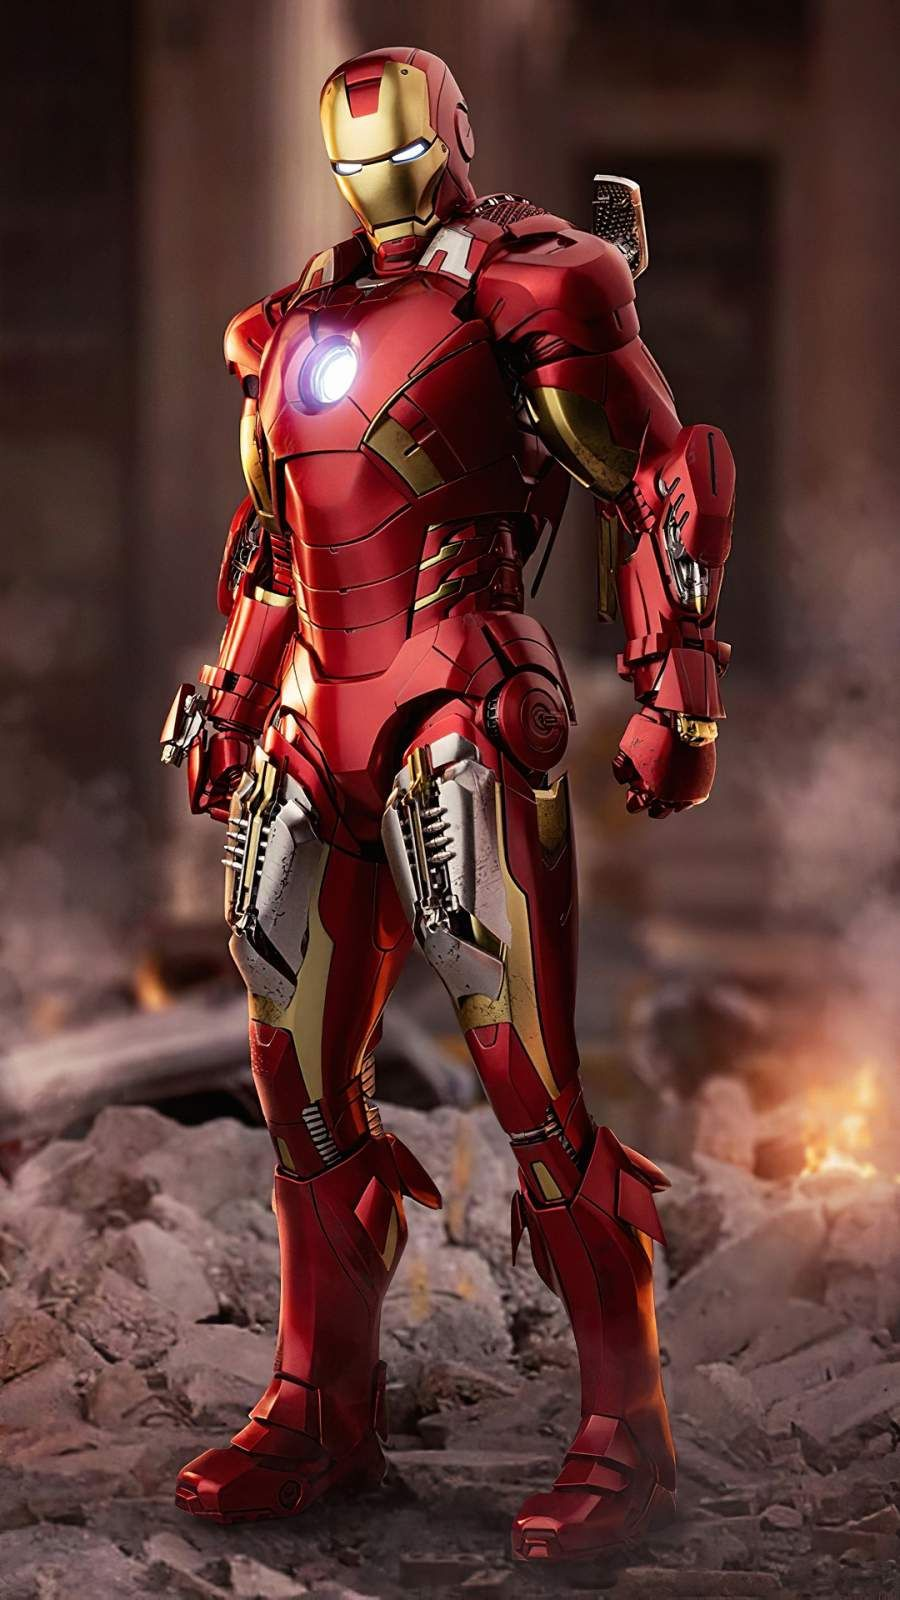 Iron Man Armor 4k Standing Iphone Wallpaper In 2020 Iron Man Hd Wallpaper New Iron Man Iron Man Avengers